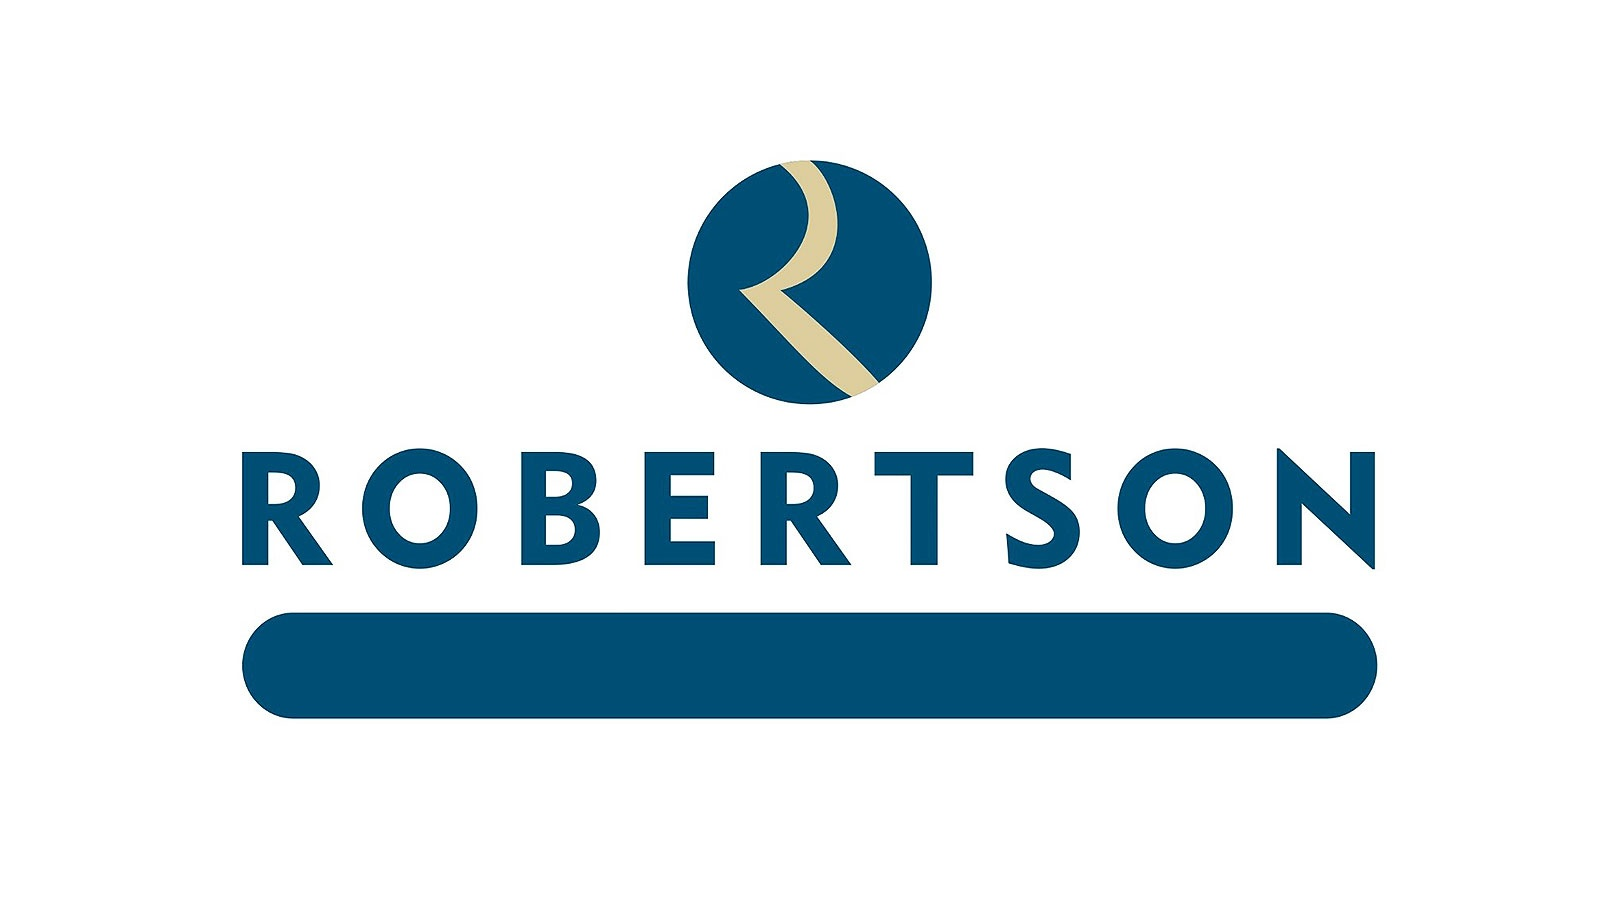 Robertson selects Adoddle as their Project Information Management CDE tool and signs an Enterprise Agreement with Asite